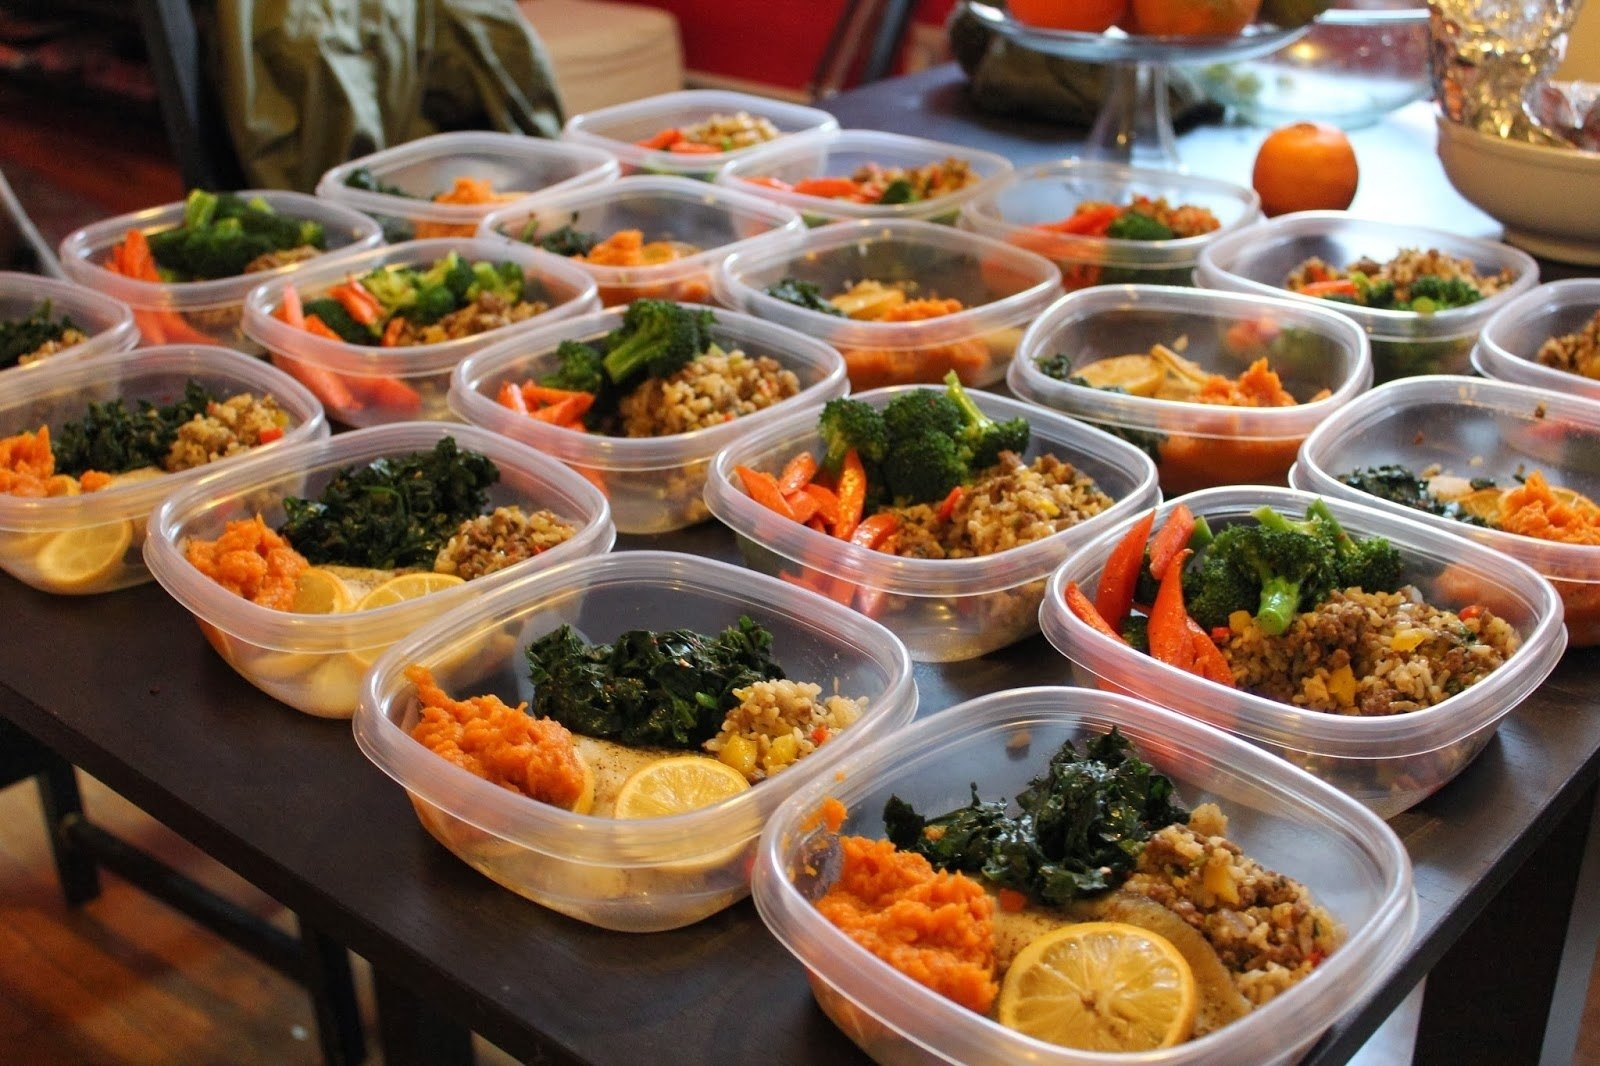 10 Fantastic Cheap And Healthy Dinner Ideas healthy meal prep ideas and food you could prep with mason jar 1 2020